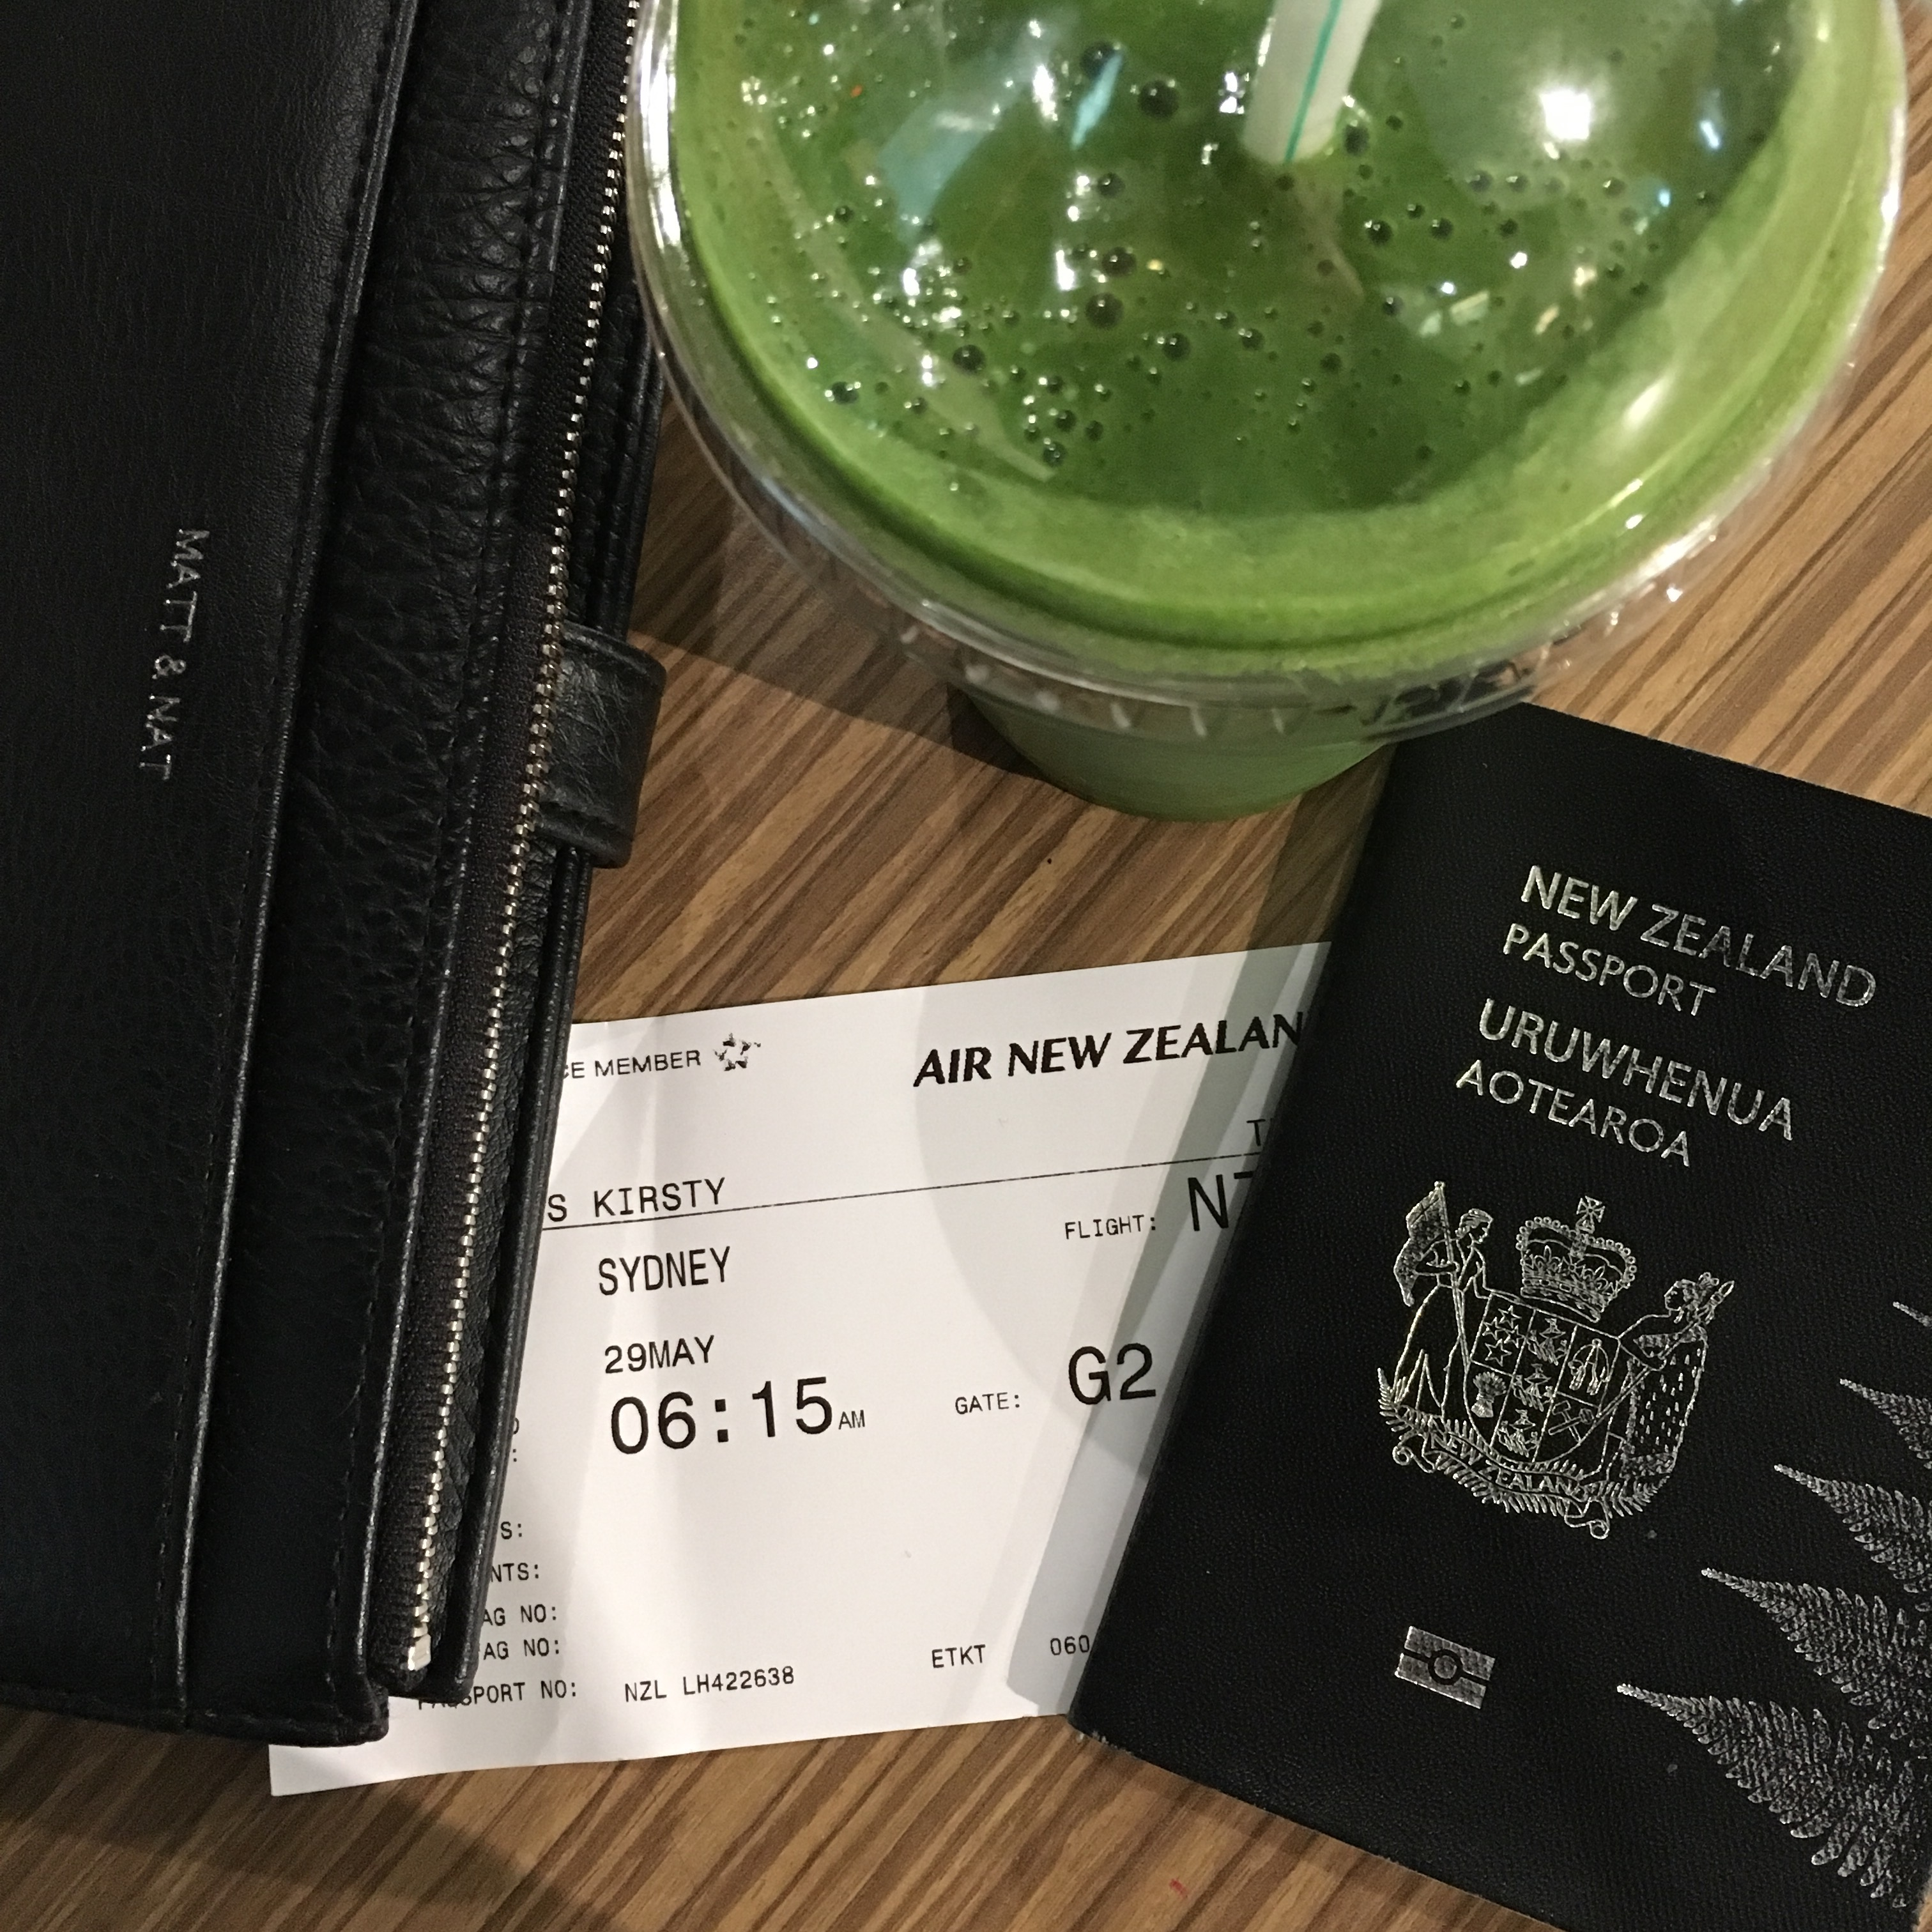 Obligatory photo of my passport, tickets and smoothie